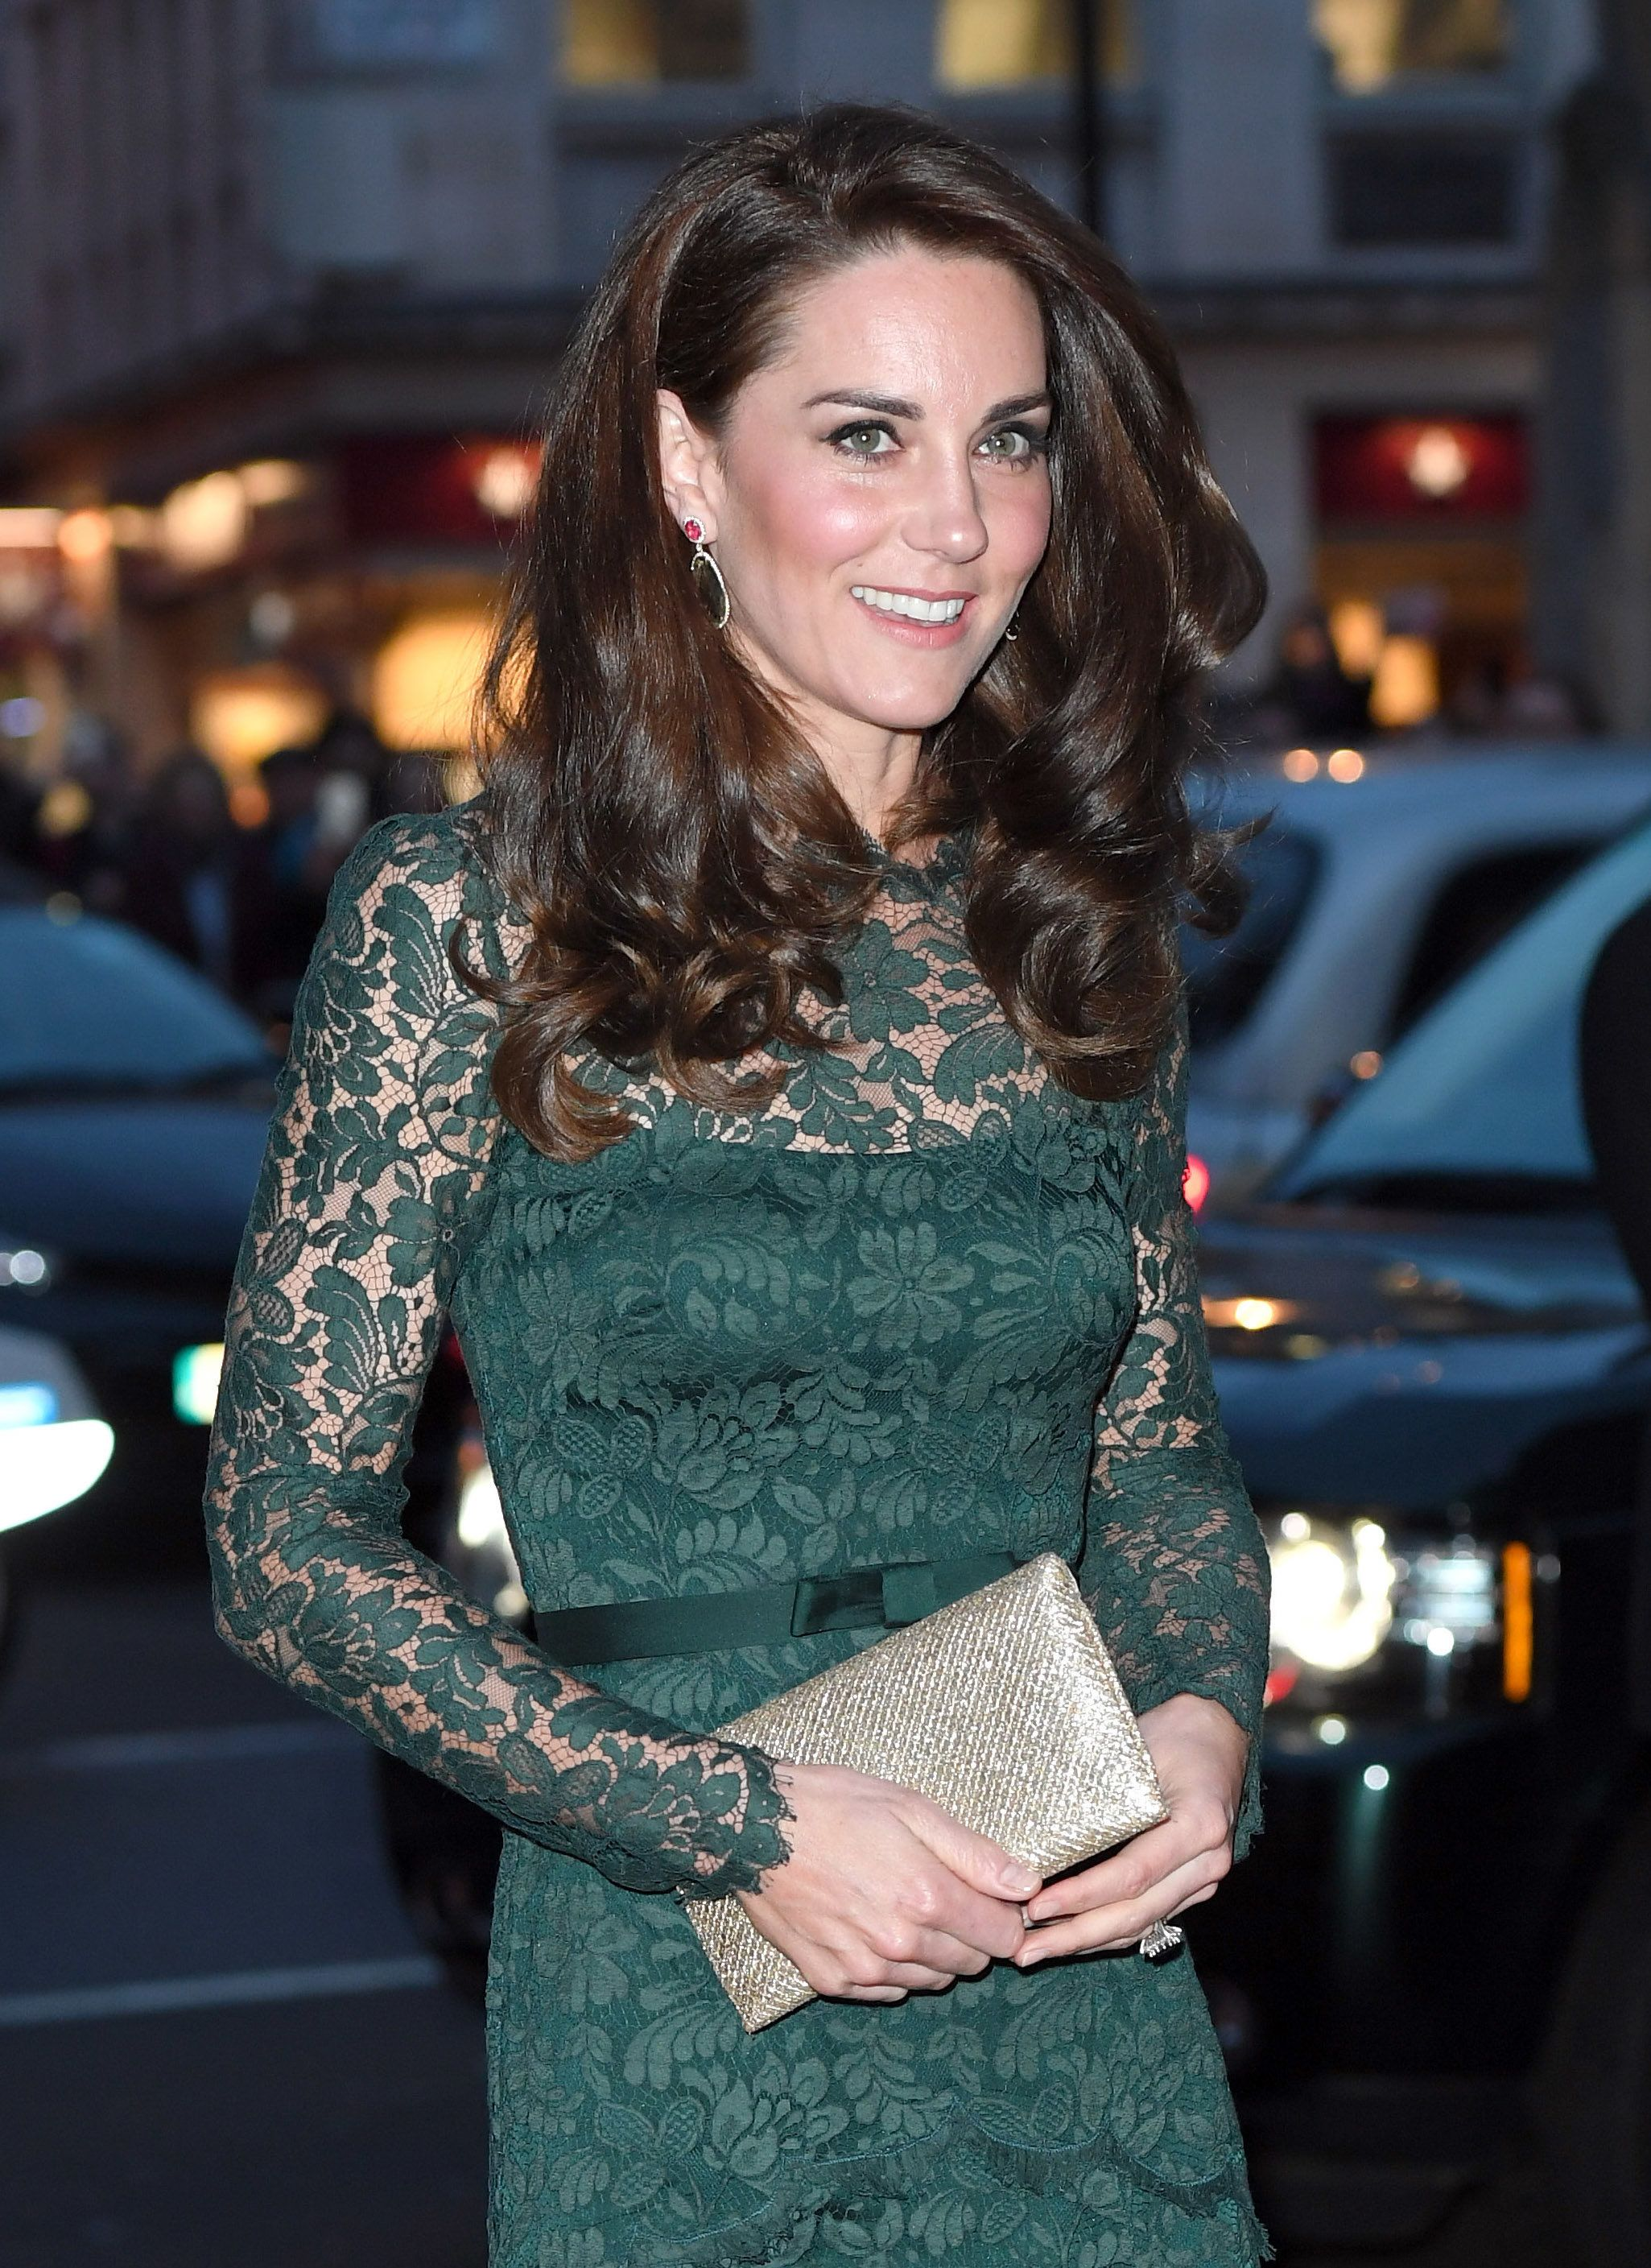 LONDON, ENGLAND - MARCH 28:  Catherine, Duchess of Cambridge attends the Portrait Gala 2017 at the National Portrait Gallery on March 28, 2017 in London, England.  (Photo by Karwai Tang/WireImage)